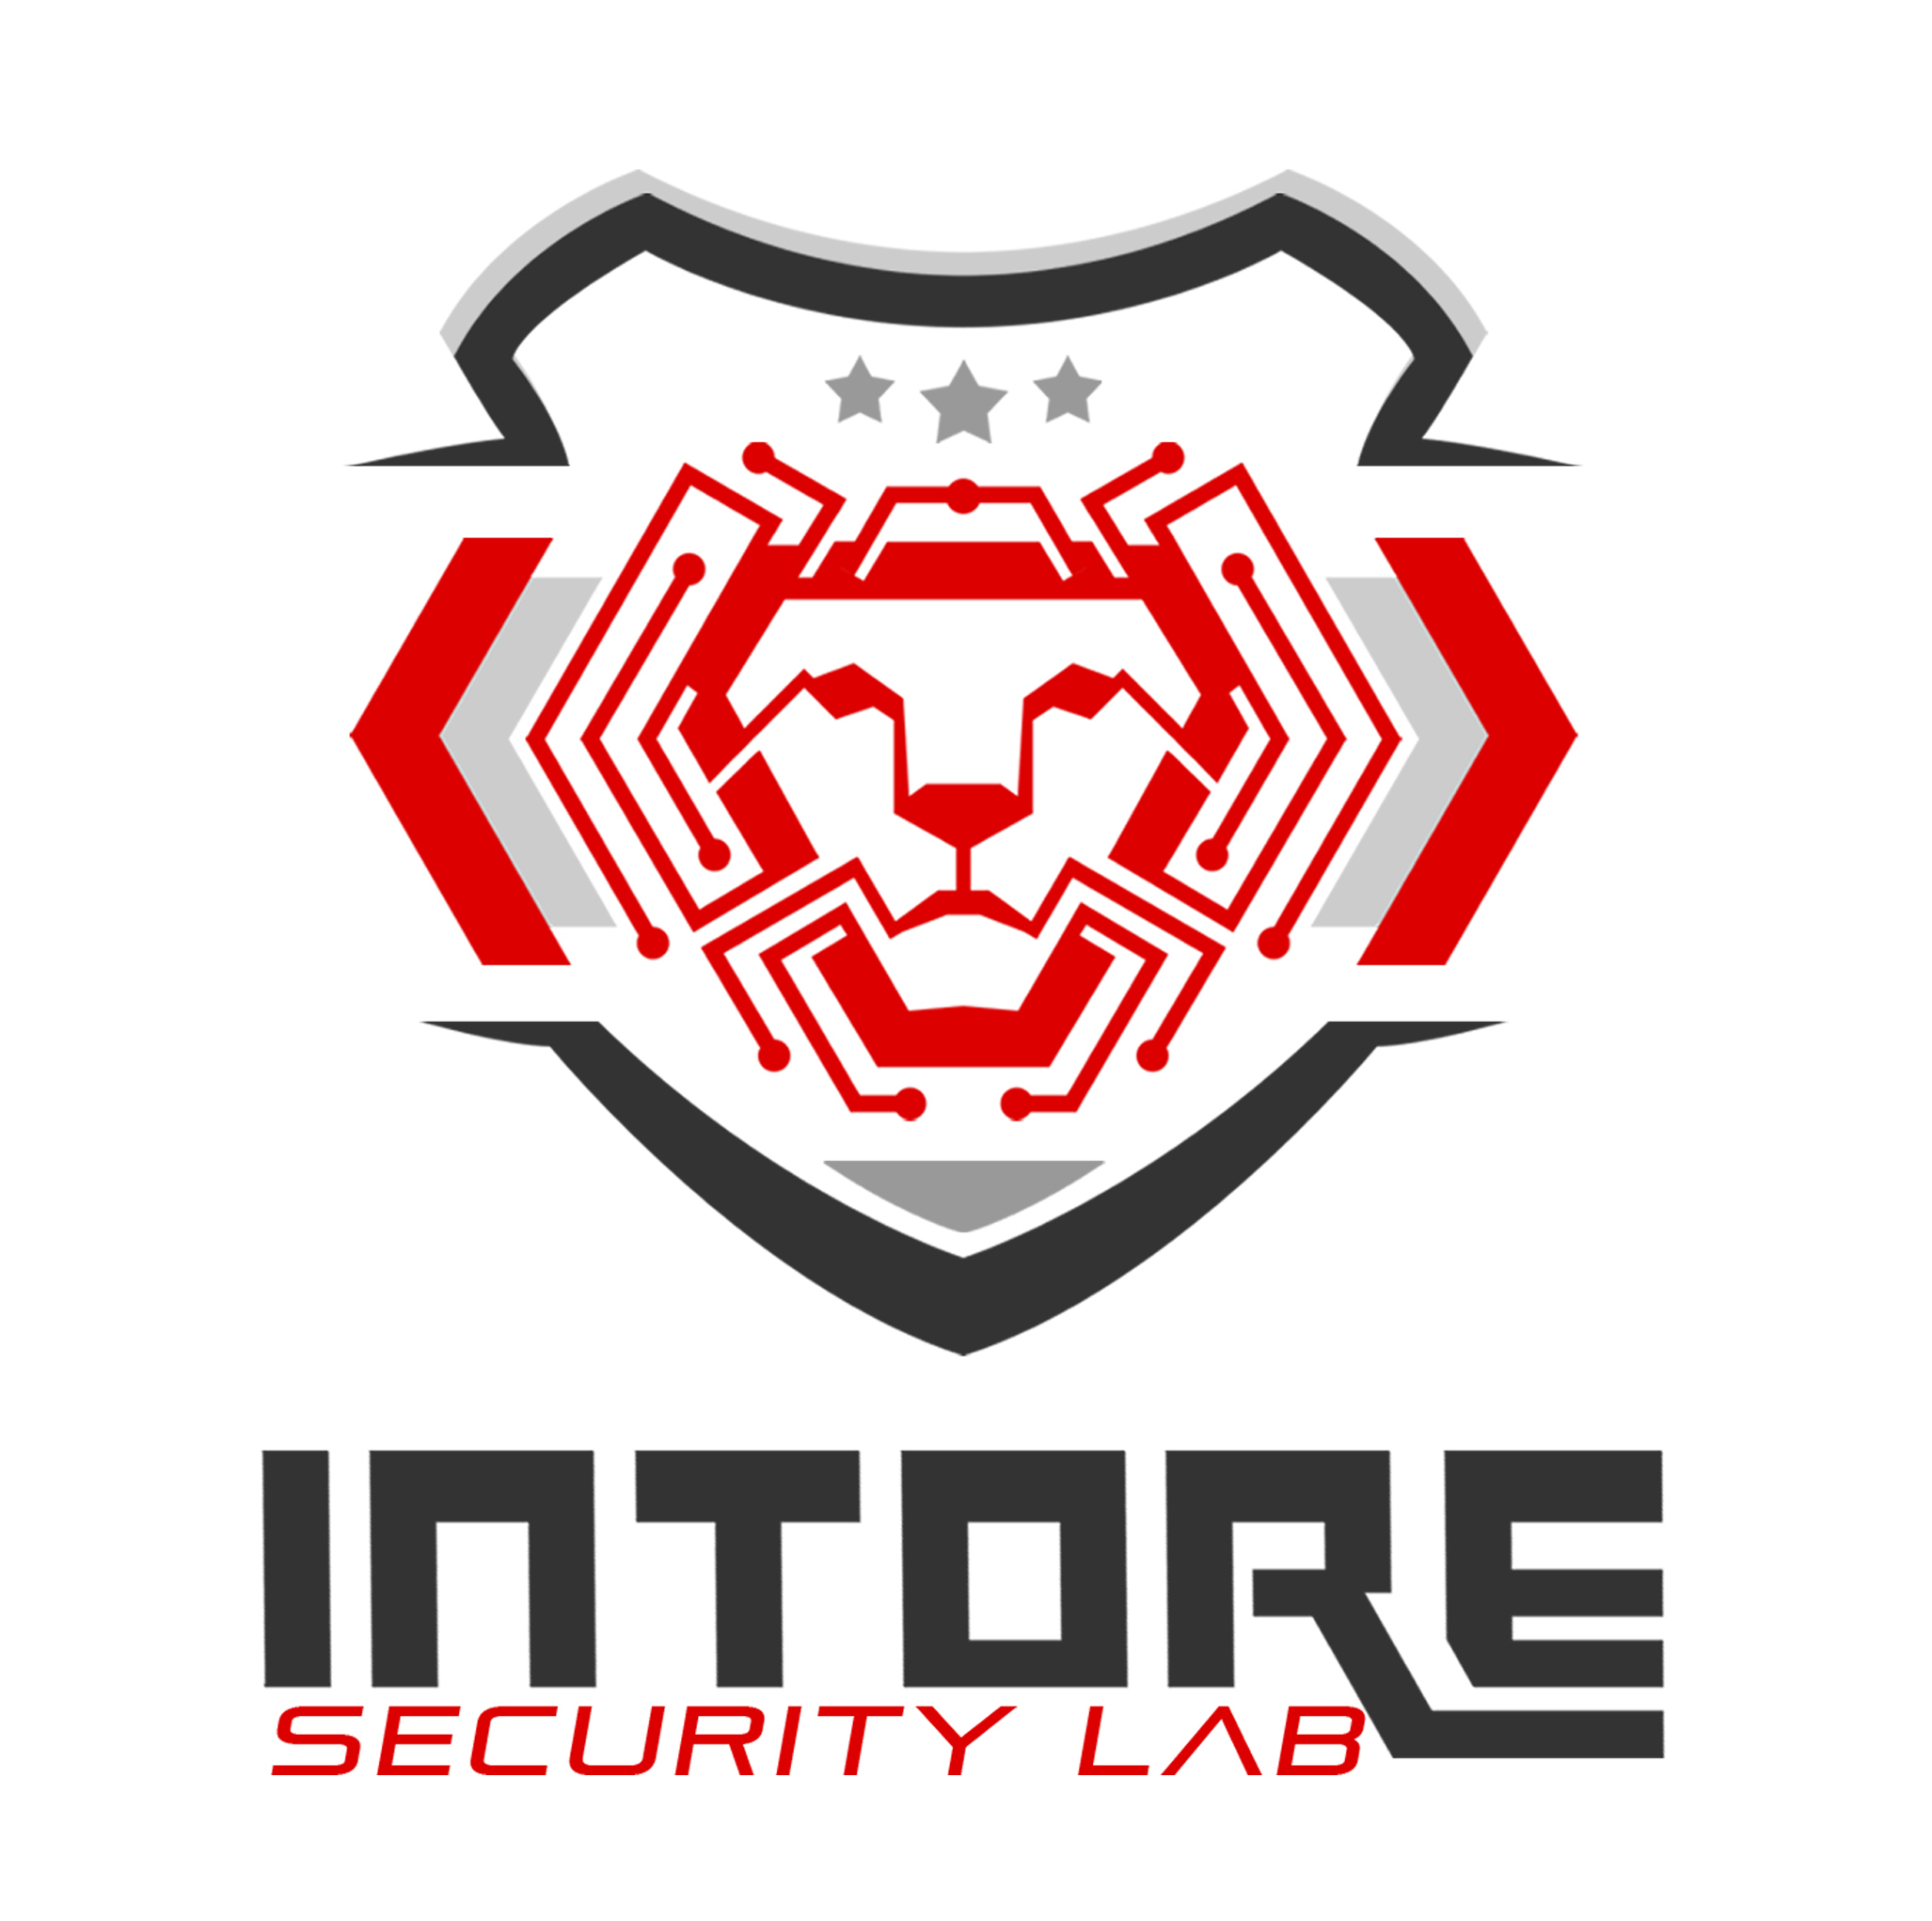 Intore Security